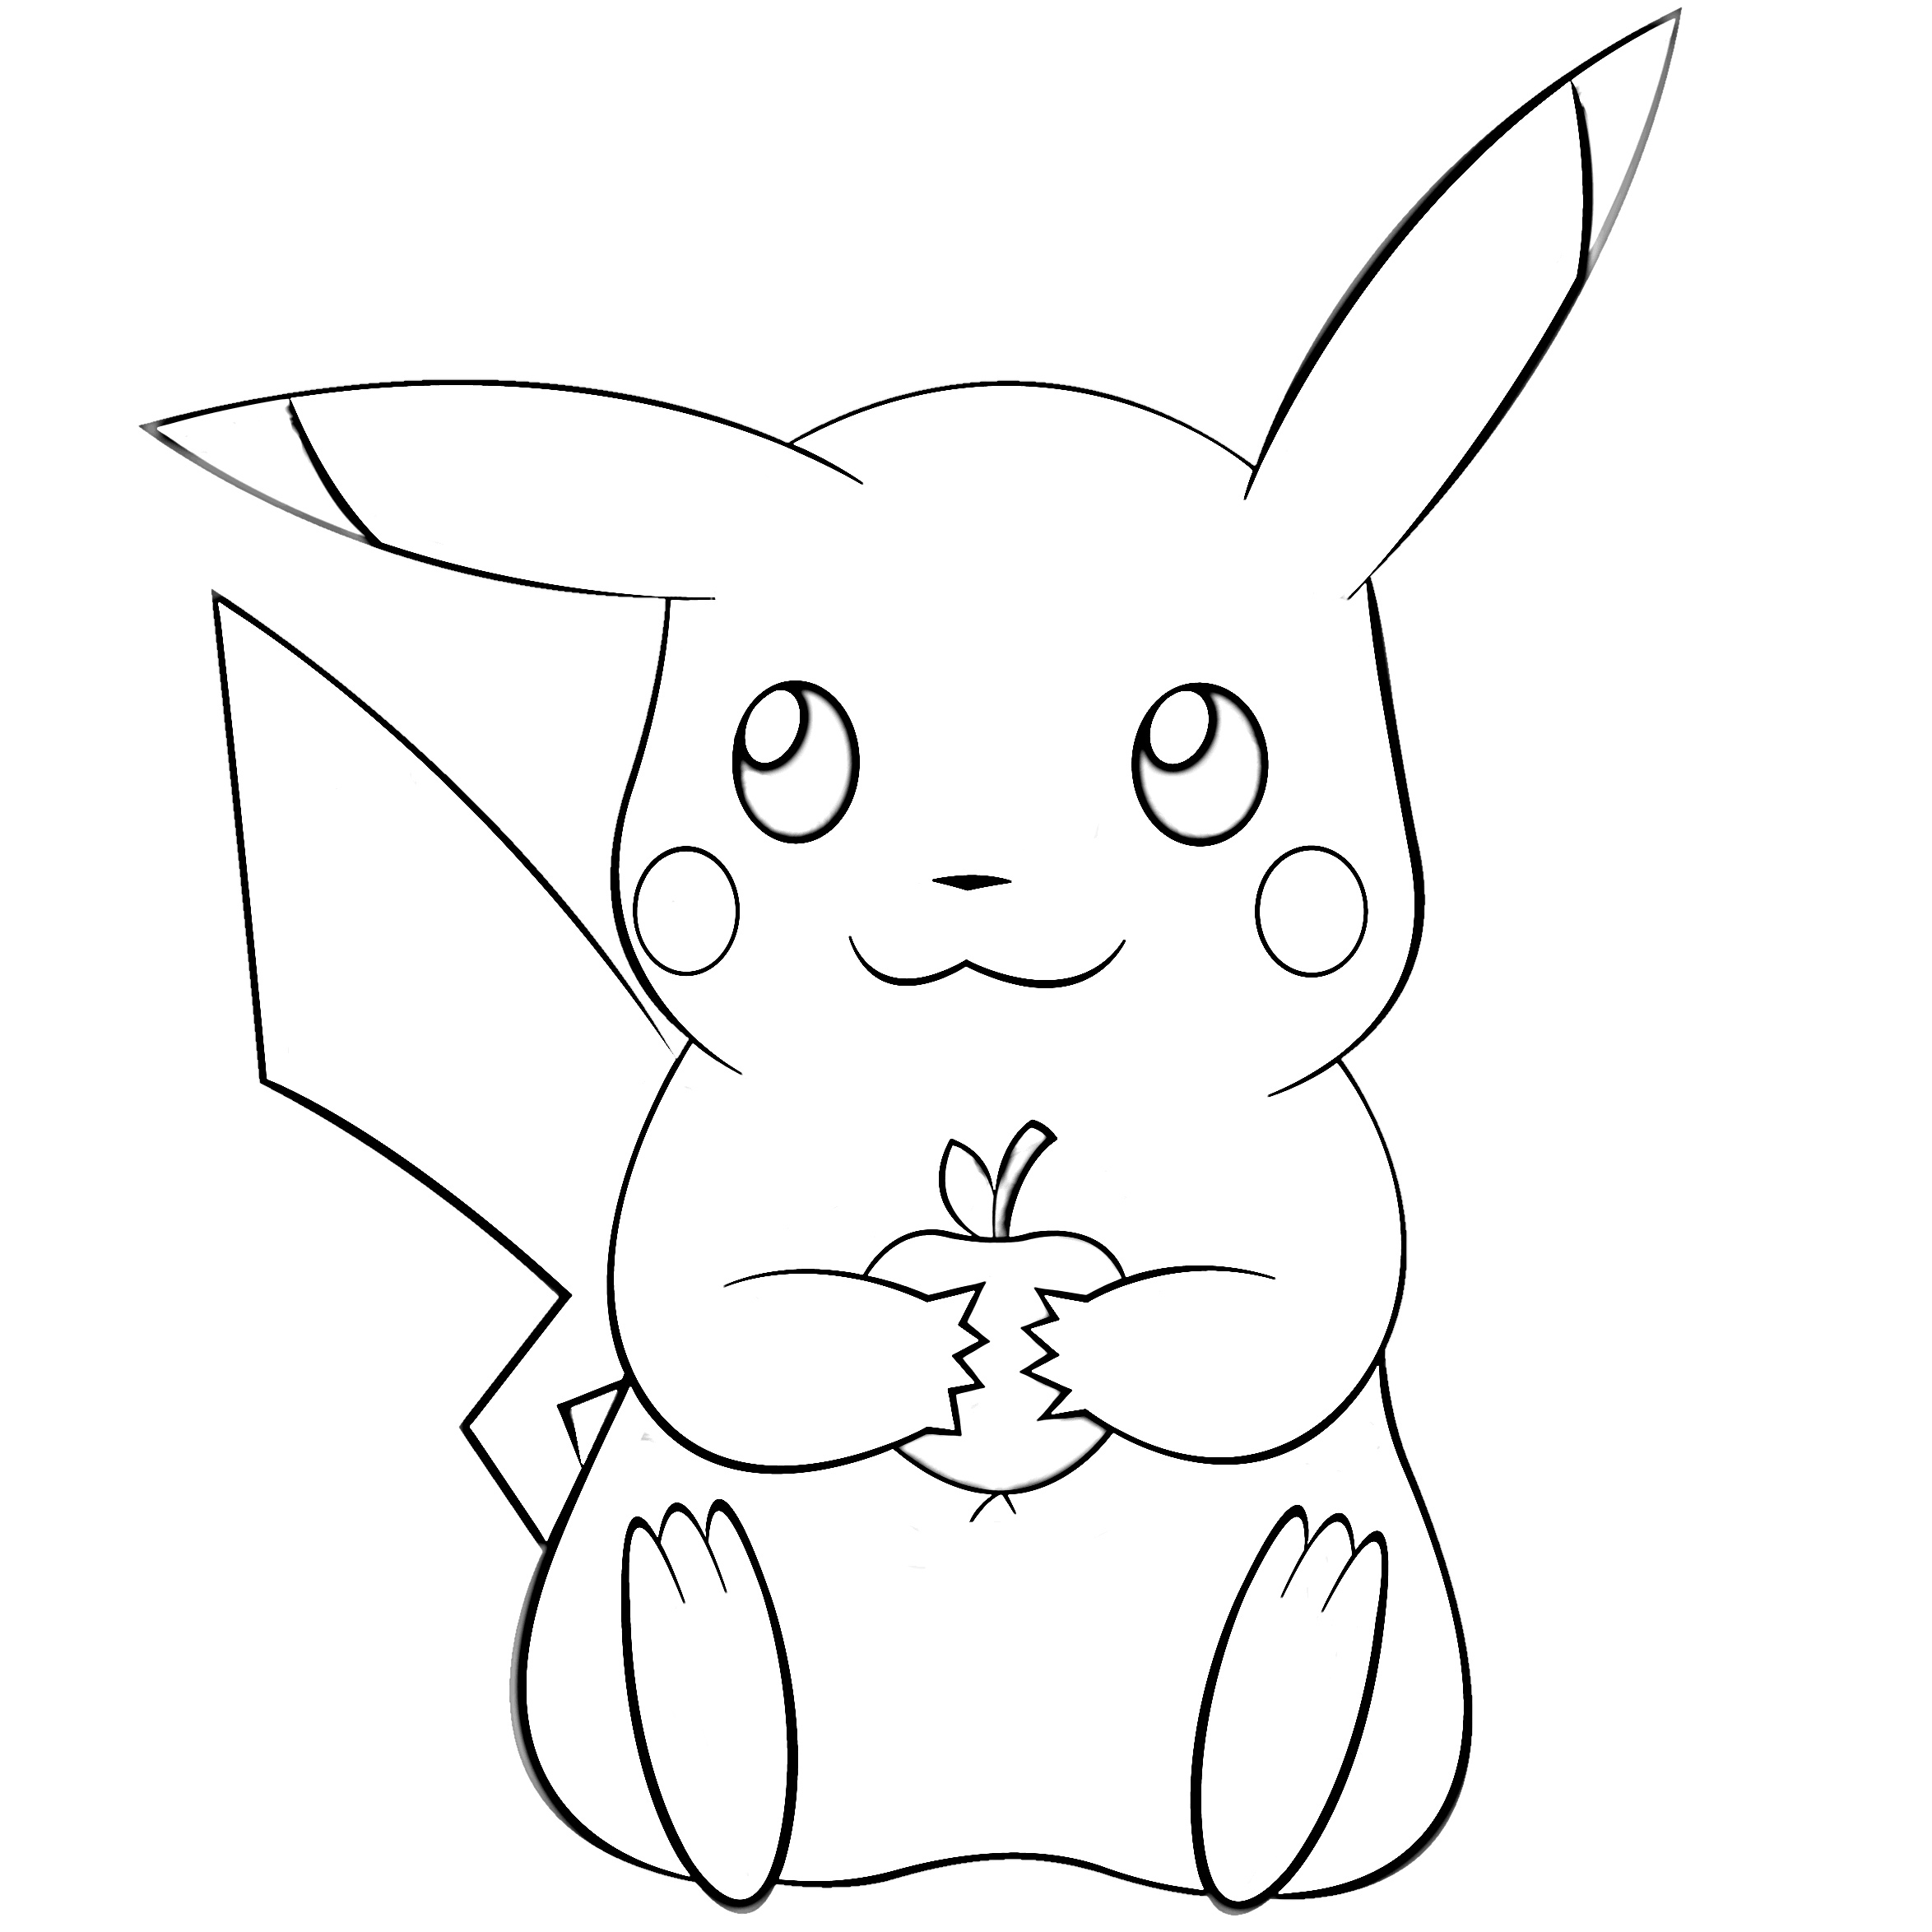 picachu coloring pages pikachu coloring pages free printable pikachu coloring pages pages coloring picachu